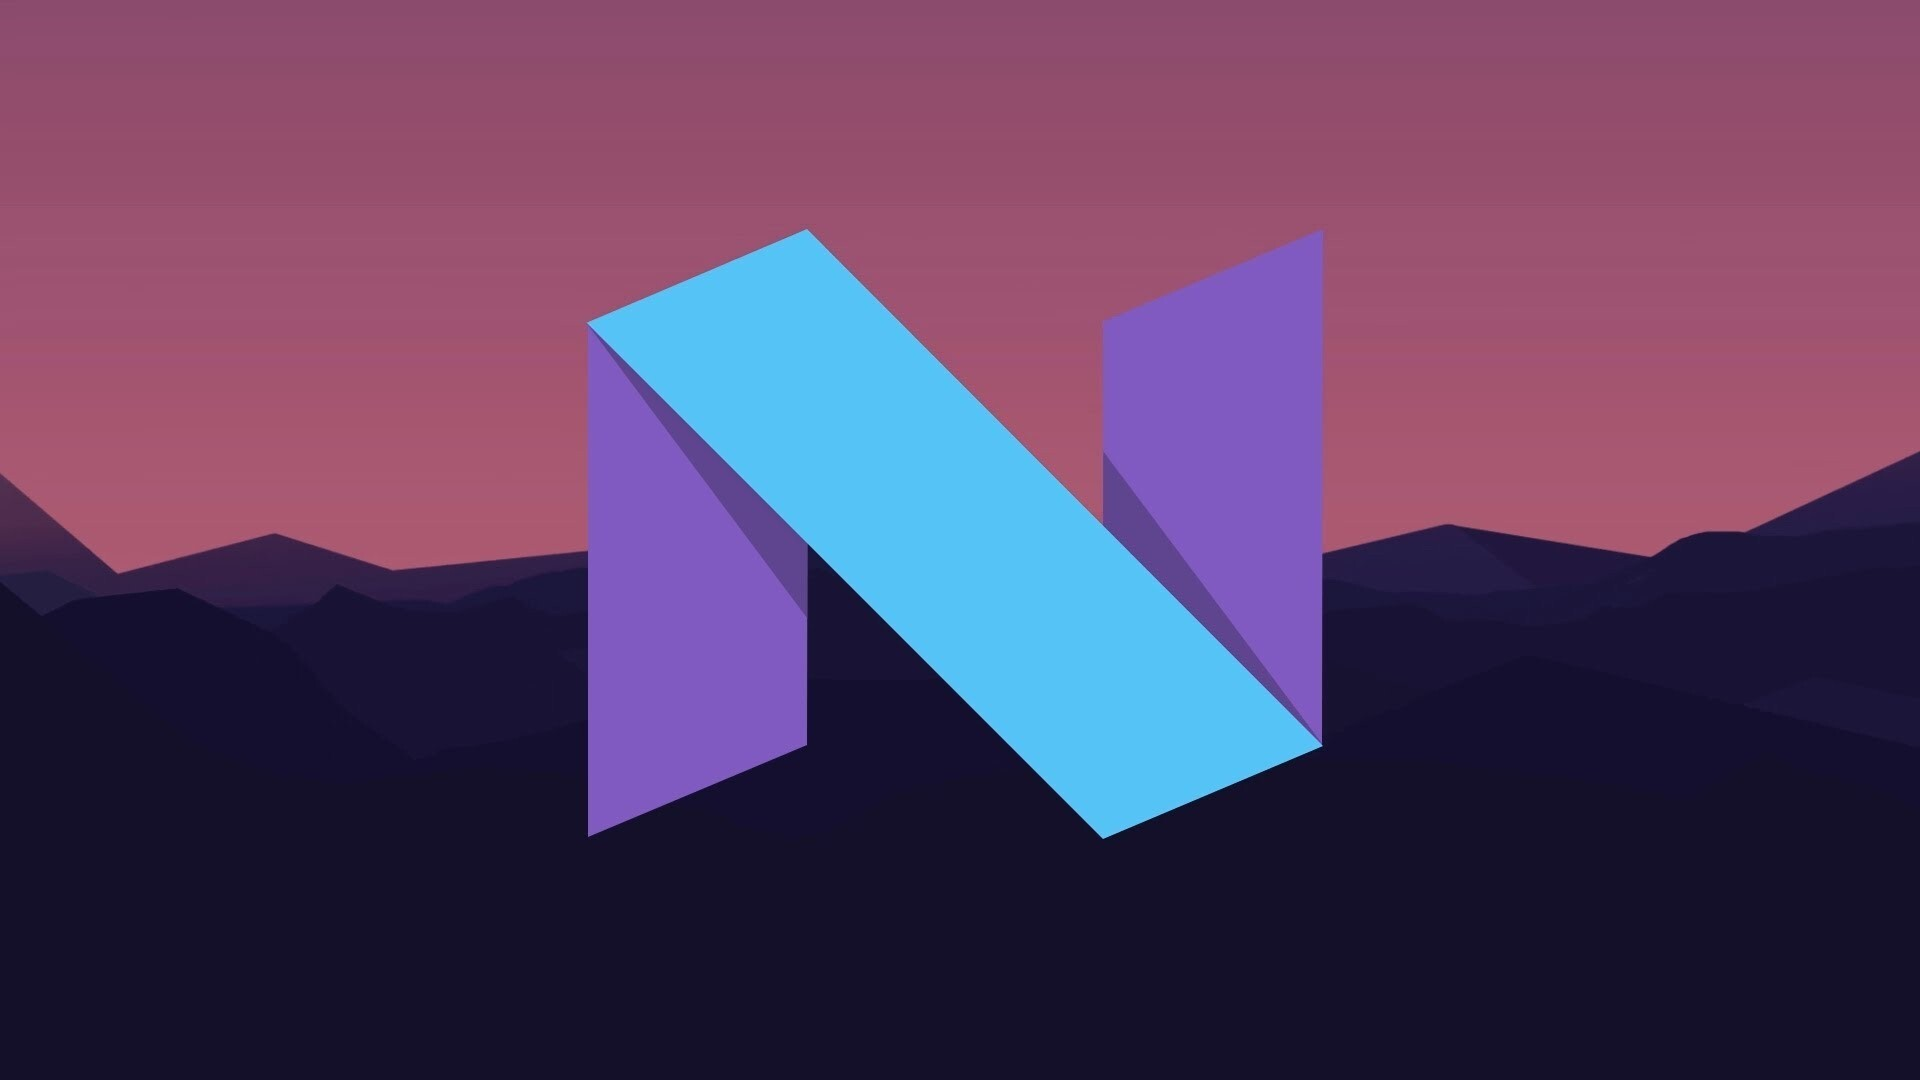 Android Nougat Logo Hd Wallpaper Hd Wallpapers